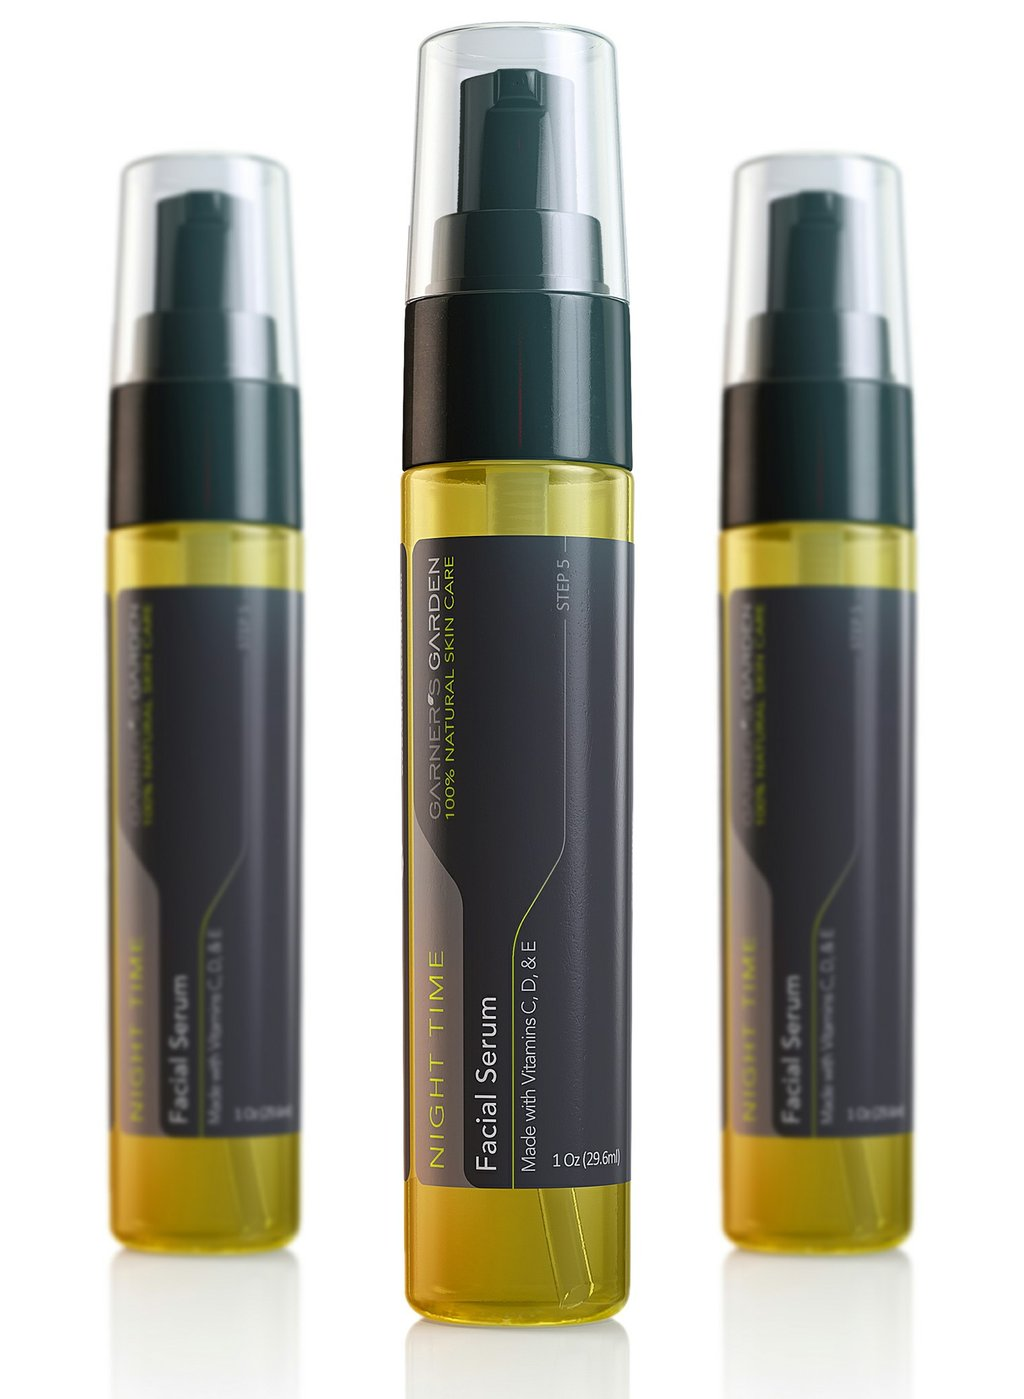 Vitamin C Facial Serum